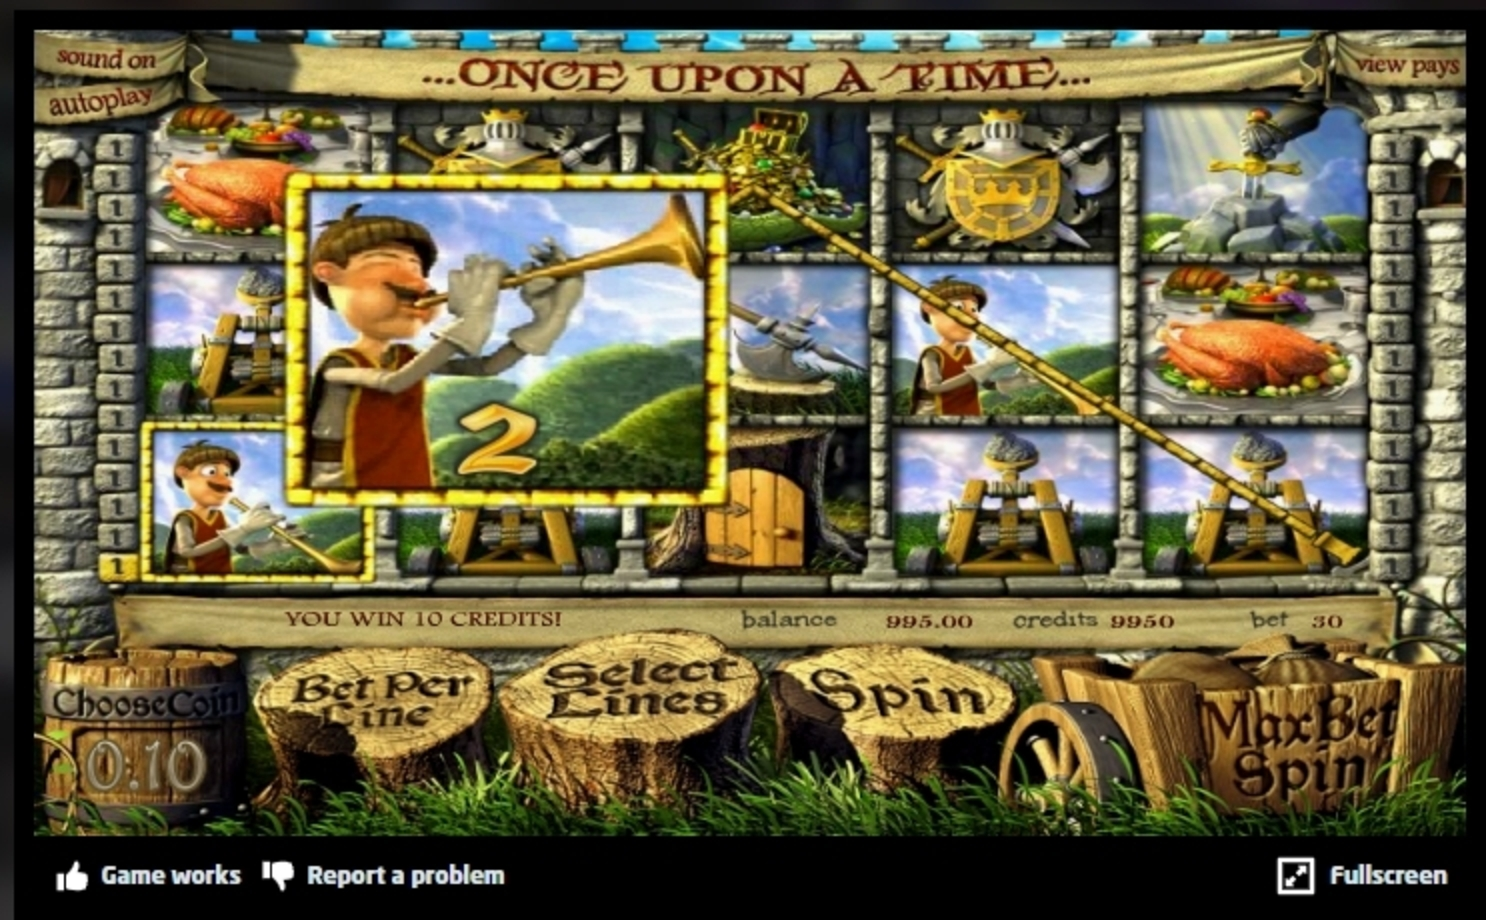 Win Money in Once Upon a Time (Betsoft) Free Slot Game by Betsoft